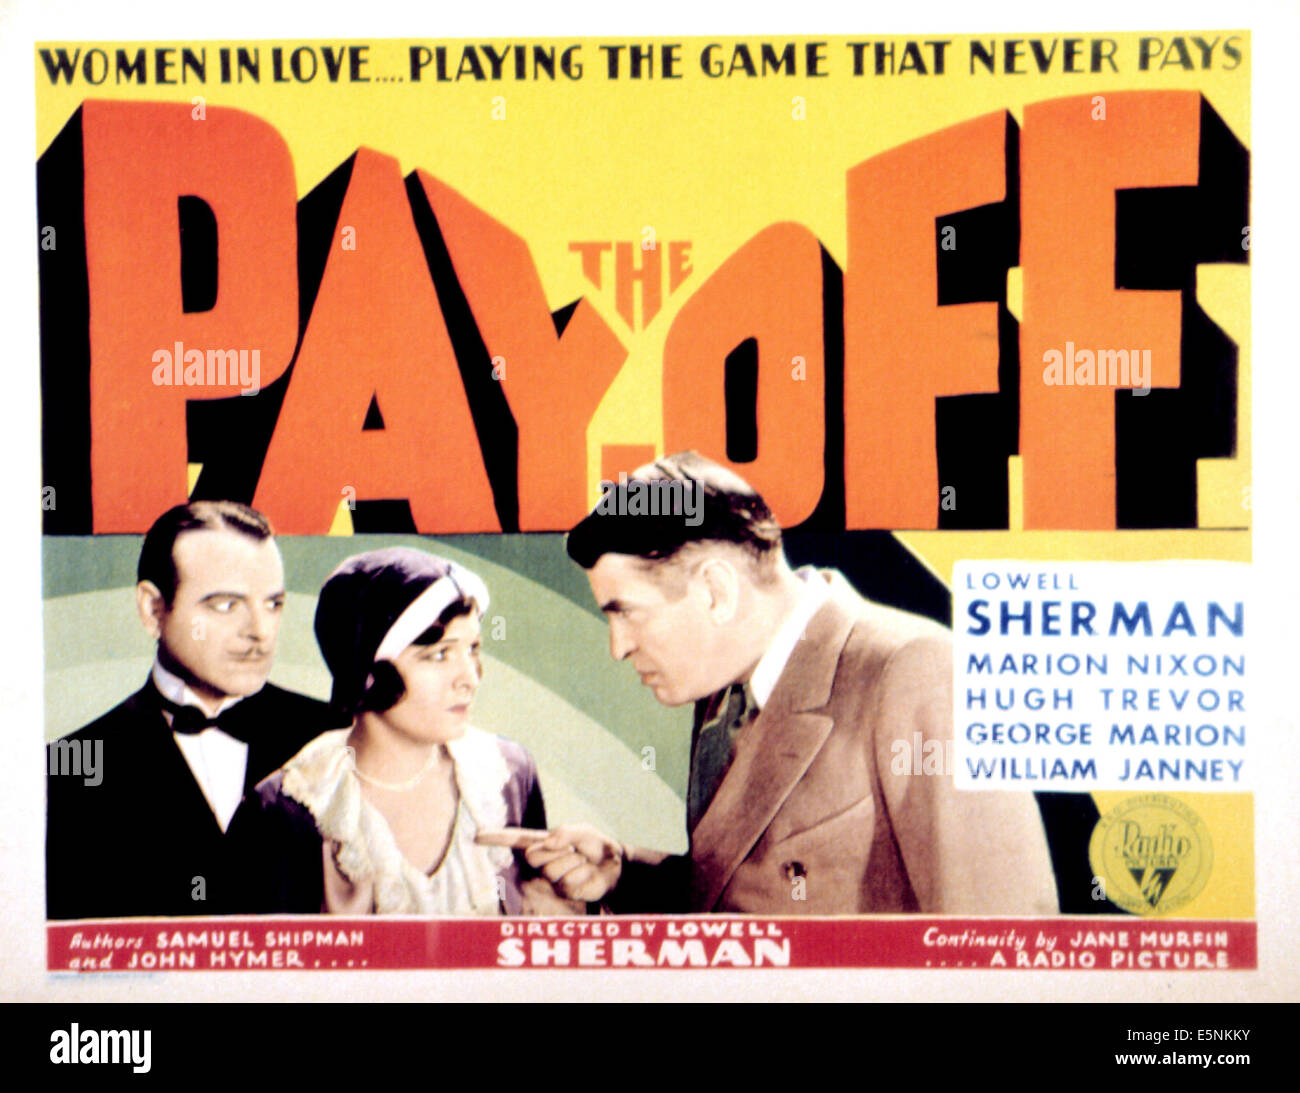 THE PAY OFF, Lowell Sherman, Marion Nixon, George F. Marion, 1930 - Stock Image